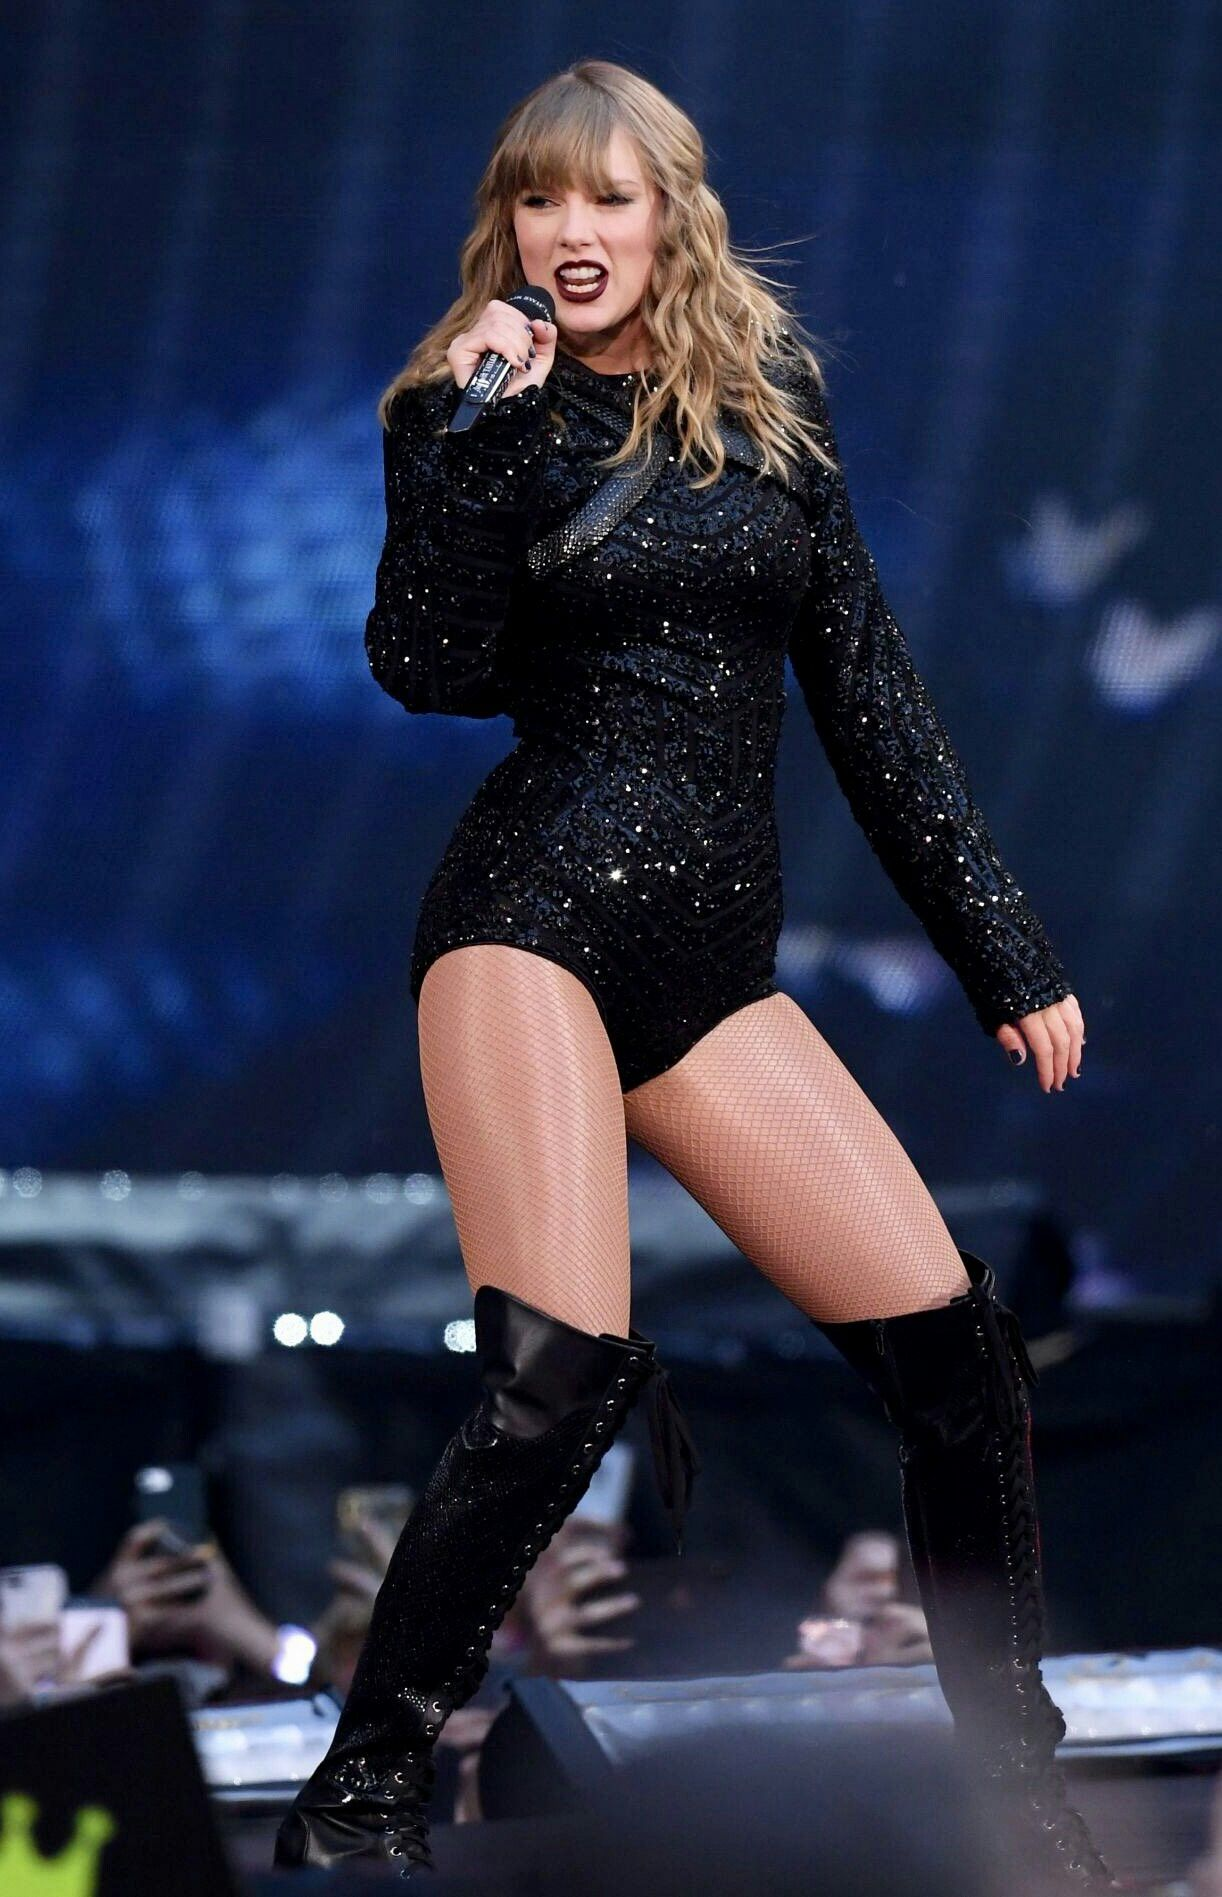 Pin by meganinreallife on Taylor Swift | Taylor swift ...